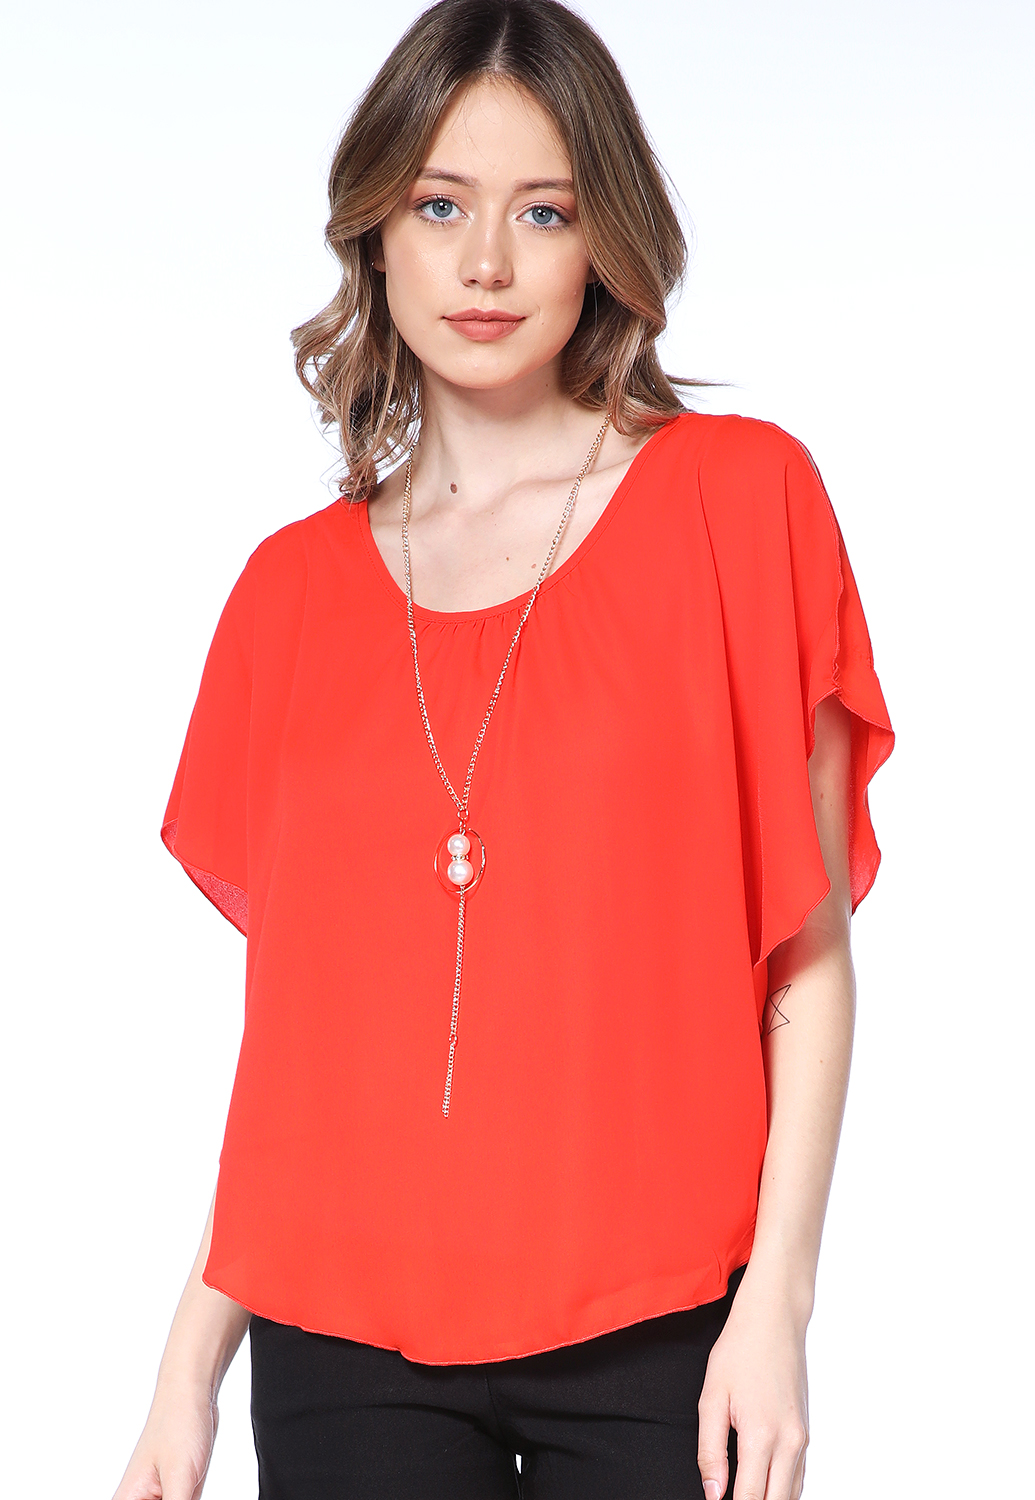 Open Shoulder Dressy Top W/Necklace